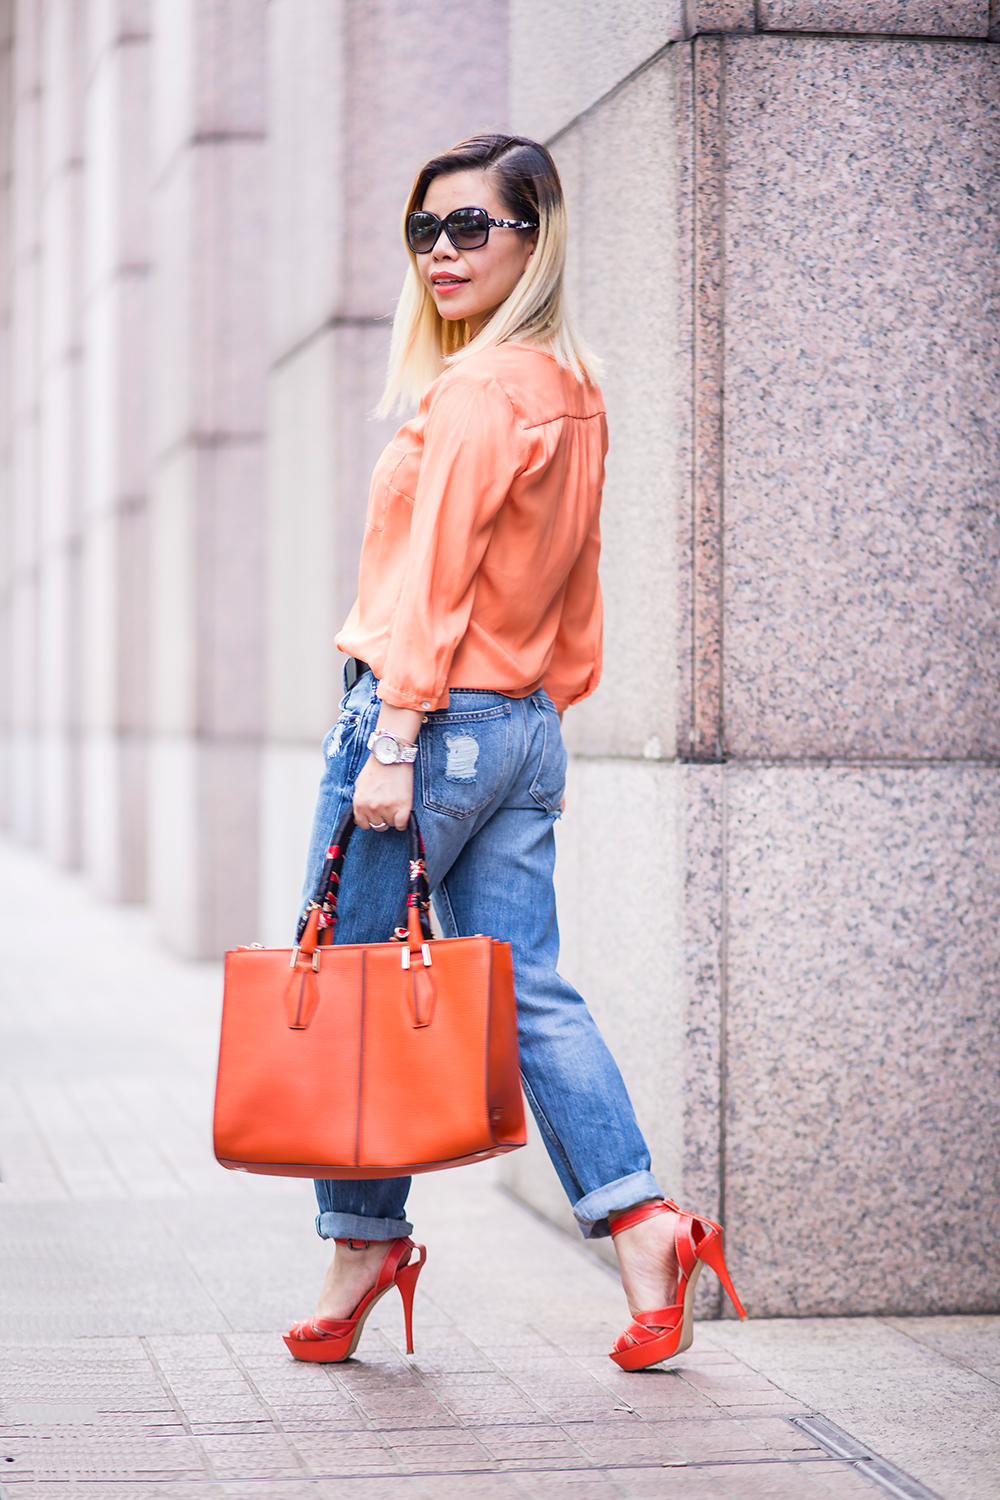 CrystalPhuong- Singapore Fashion Blog- Casual weekend in boyfriend jeans